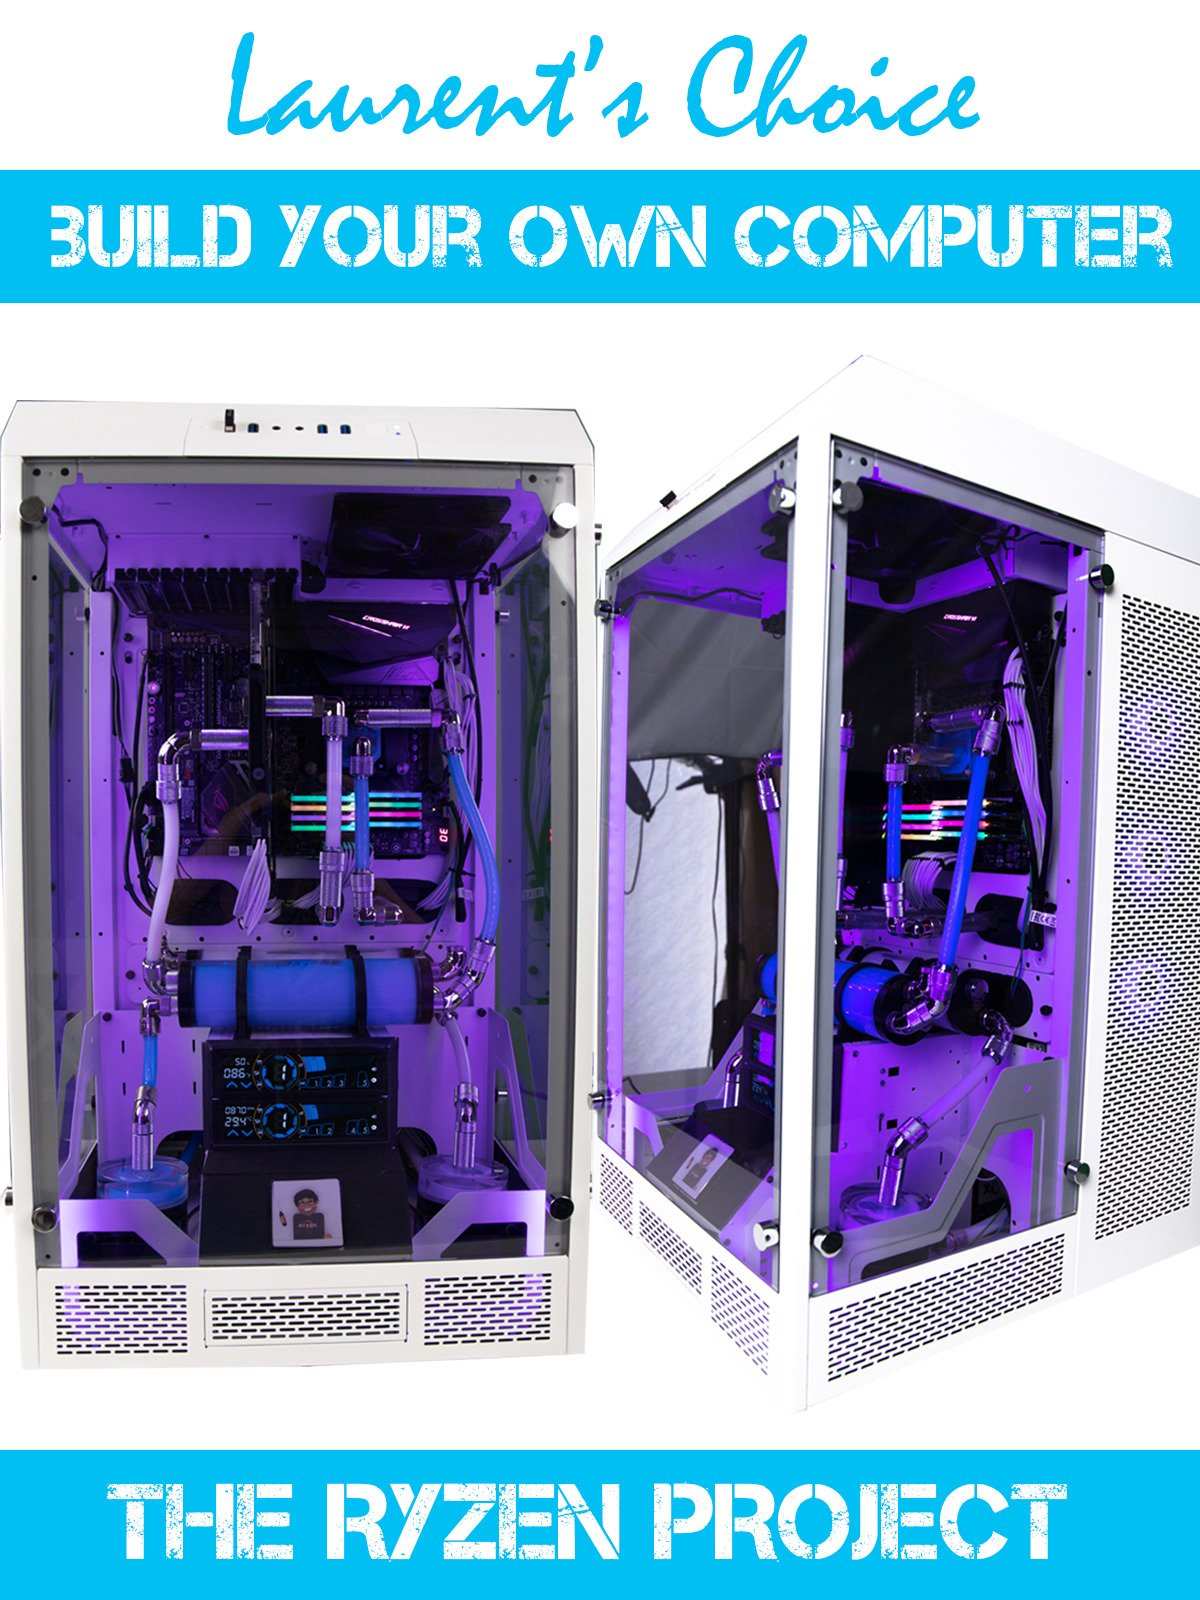 Build your own computer, the Ryzen Project